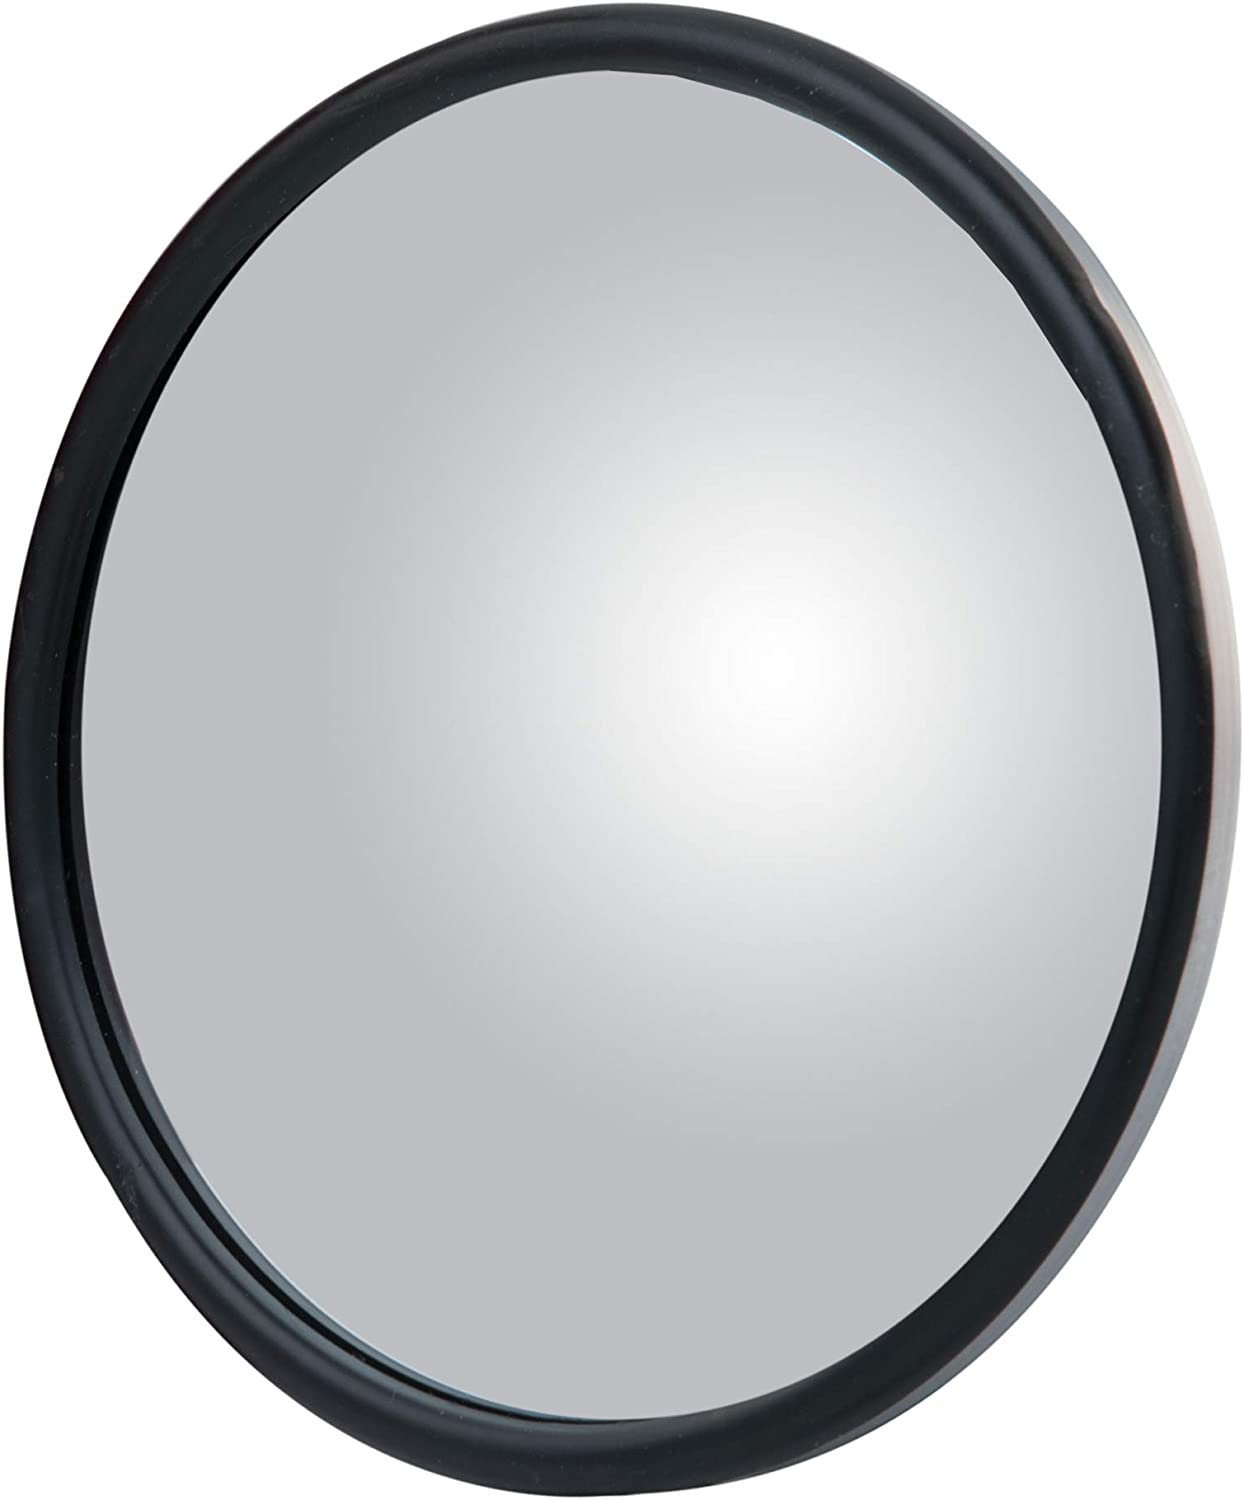 Universal Driver or Passenger Side RETRAC 610556 8-Inch Stainless Steel Offset-Mount Heated Convex Mirror Head